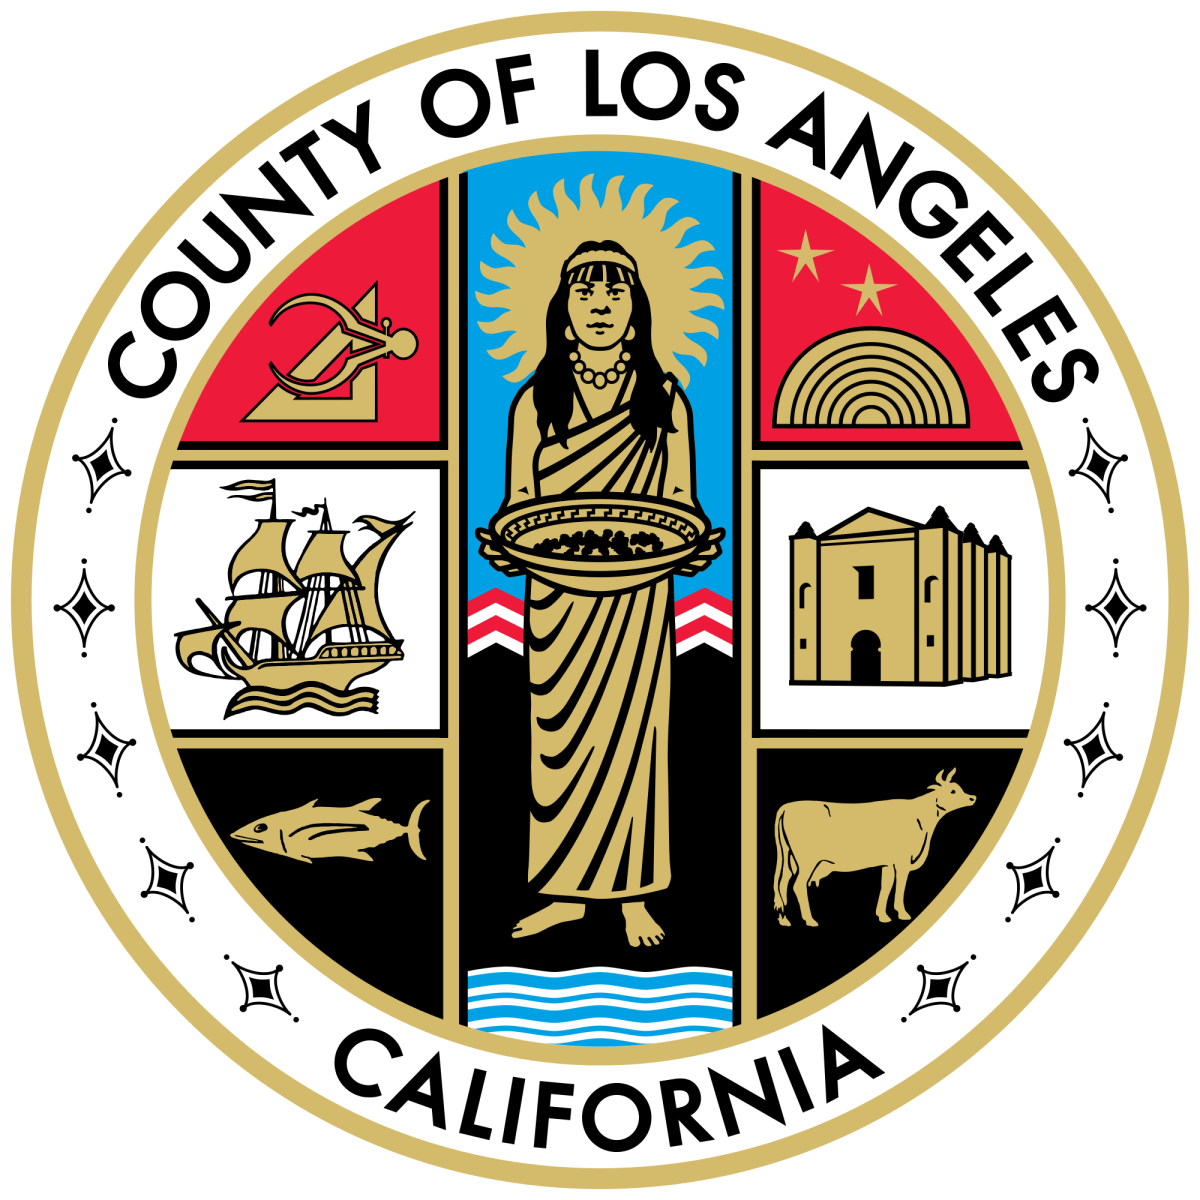 1200px-Seal_of_Los_Angeles_County__California.svg.png